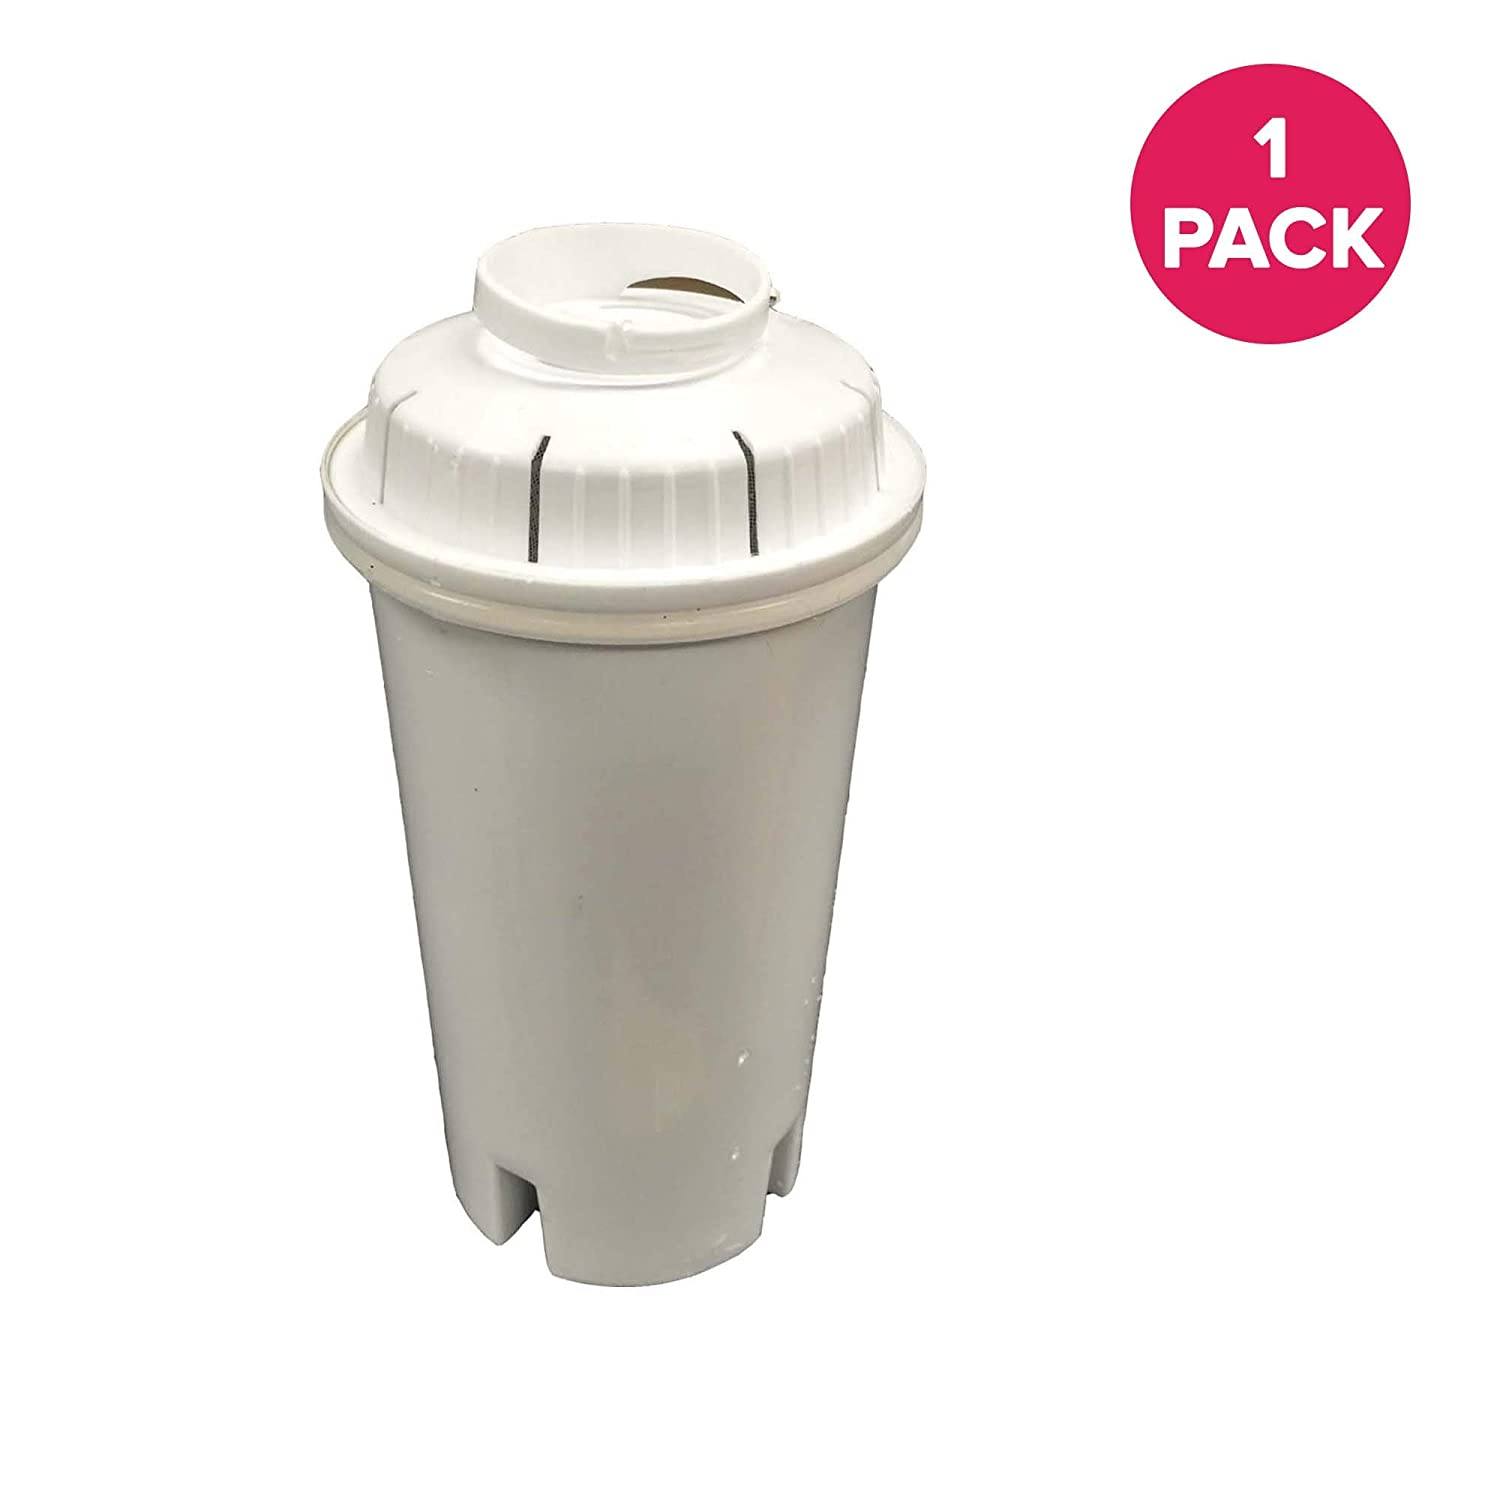 Think Crucial Replacement for Brita Water Filter Fits Pitchers /& Dispensers COMIN18JU003030